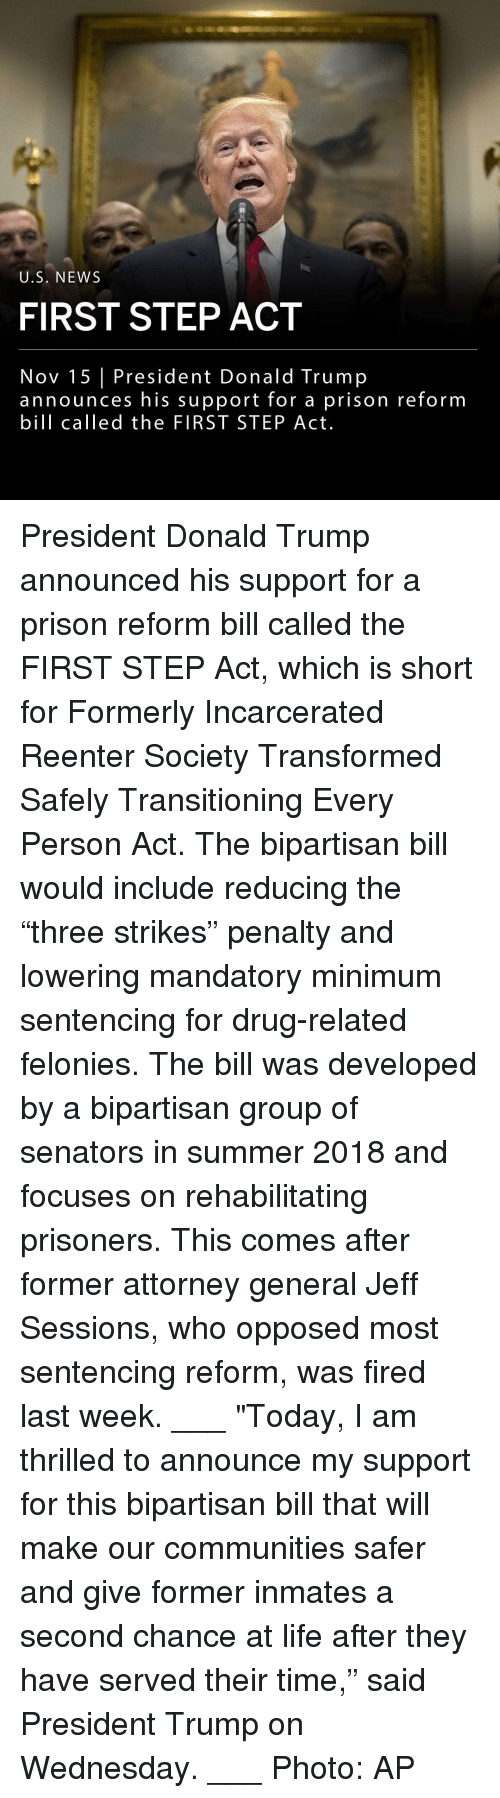 """jeff sessions: U.S. NEWS  FIRST STEP ACT  Nov 15 President Donald Trump  announces his support for a prison reform  bill called the FIRST STEP Act. President Donald Trump announced his support for a prison reform bill called the FIRST STEP Act, which is short for Formerly Incarcerated Reenter Society Transformed Safely Transitioning Every Person Act. The bipartisan bill would include reducing the """"three strikes"""" penalty and lowering mandatory minimum sentencing for drug-related felonies. The bill was developed by a bipartisan group of senators in summer 2018 and focuses on rehabilitating prisoners. This comes after former attorney general Jeff Sessions, who opposed most sentencing reform, was fired last week. ___ """"Today, I am thrilled to announce my support for this bipartisan bill that will make our communities safer and give former inmates a second chance at life after they have served their time,"""" said President Trump on Wednesday. ___ Photo: AP"""